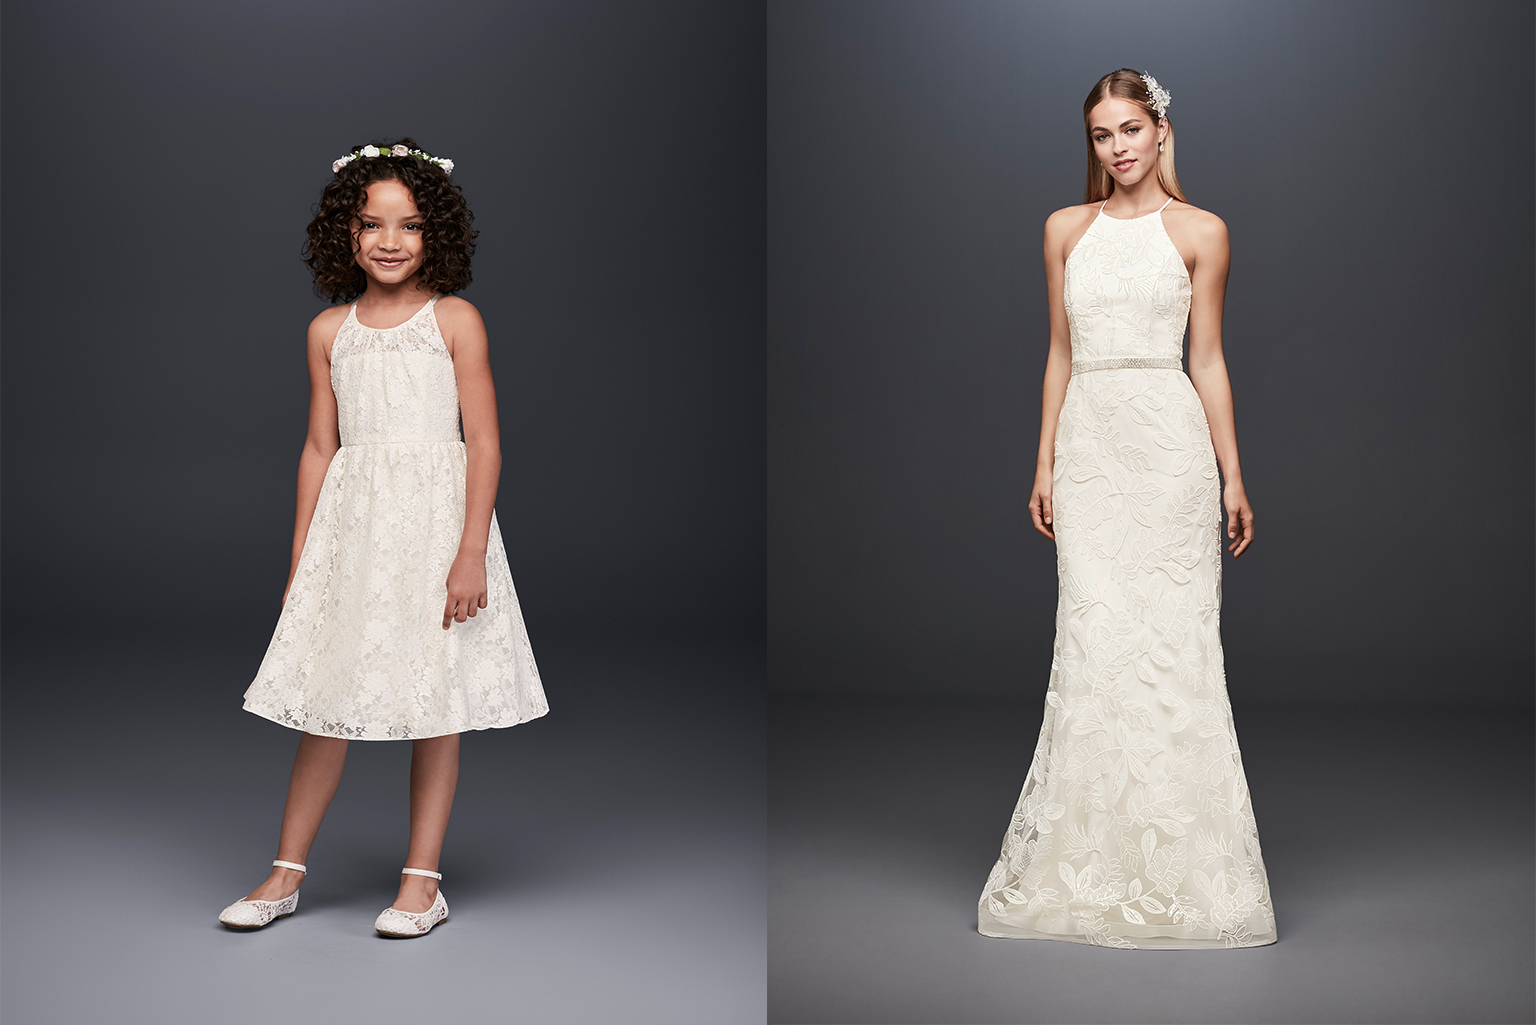 Lace flower girl and bridal style